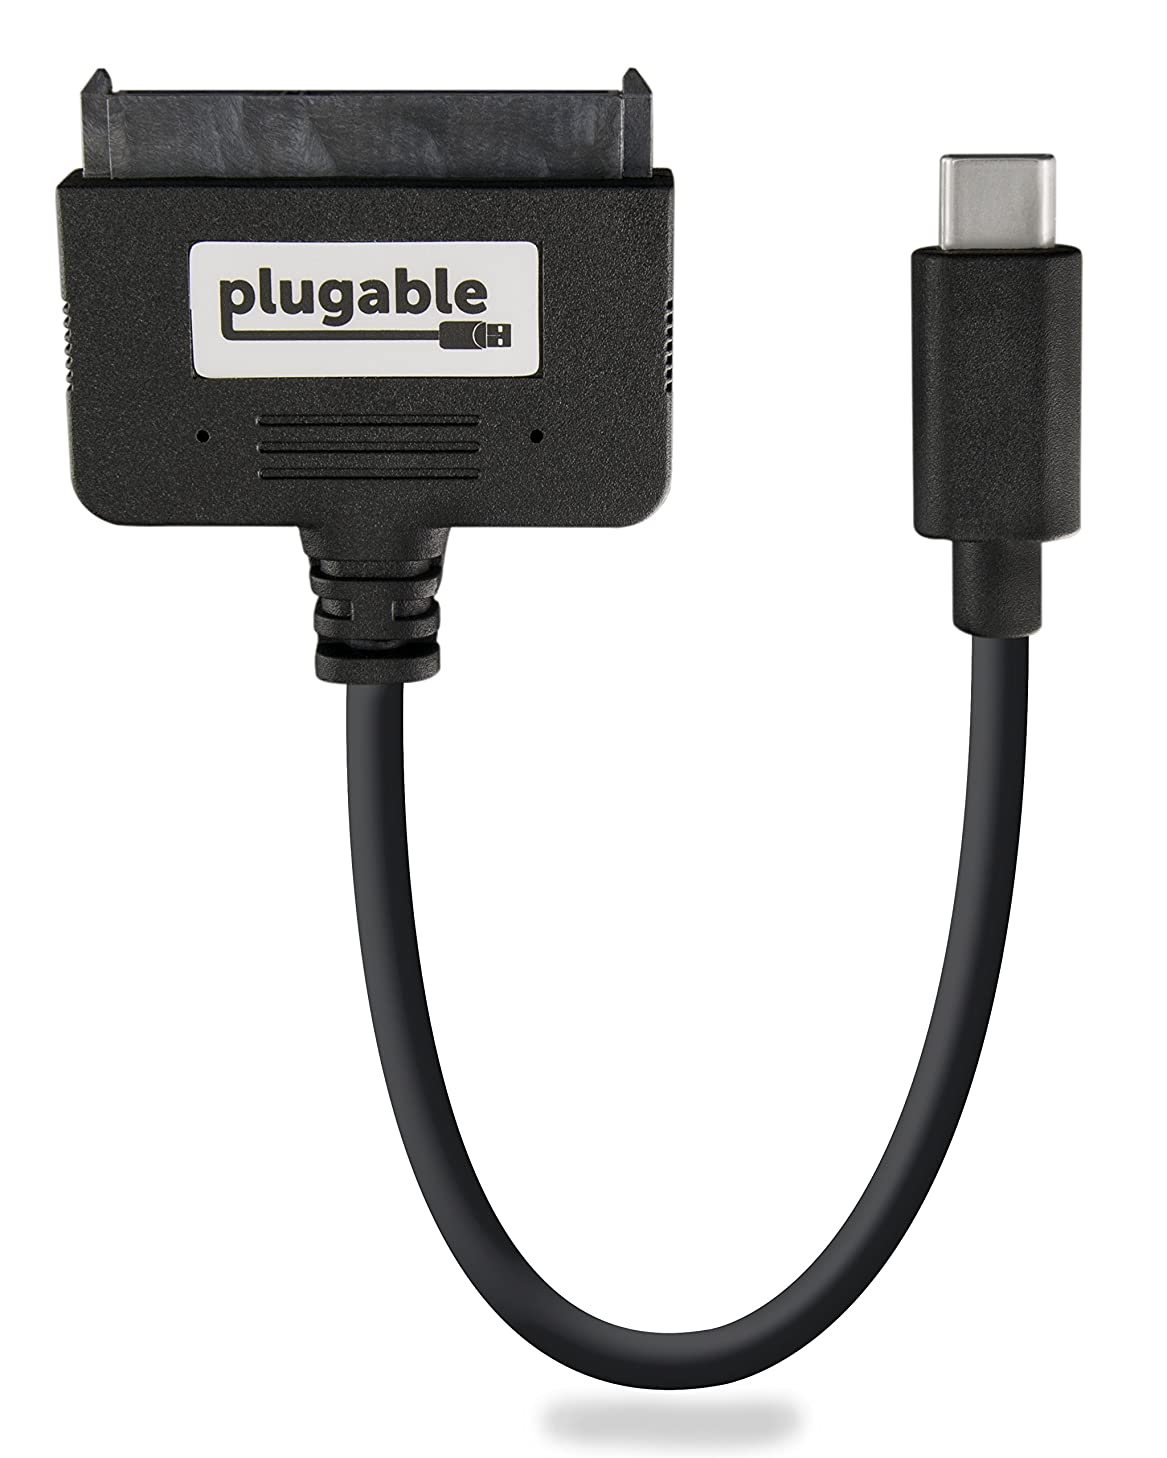 Plugable USB 3.1 Gen 2 USB-C to SATA Adapter Cable.